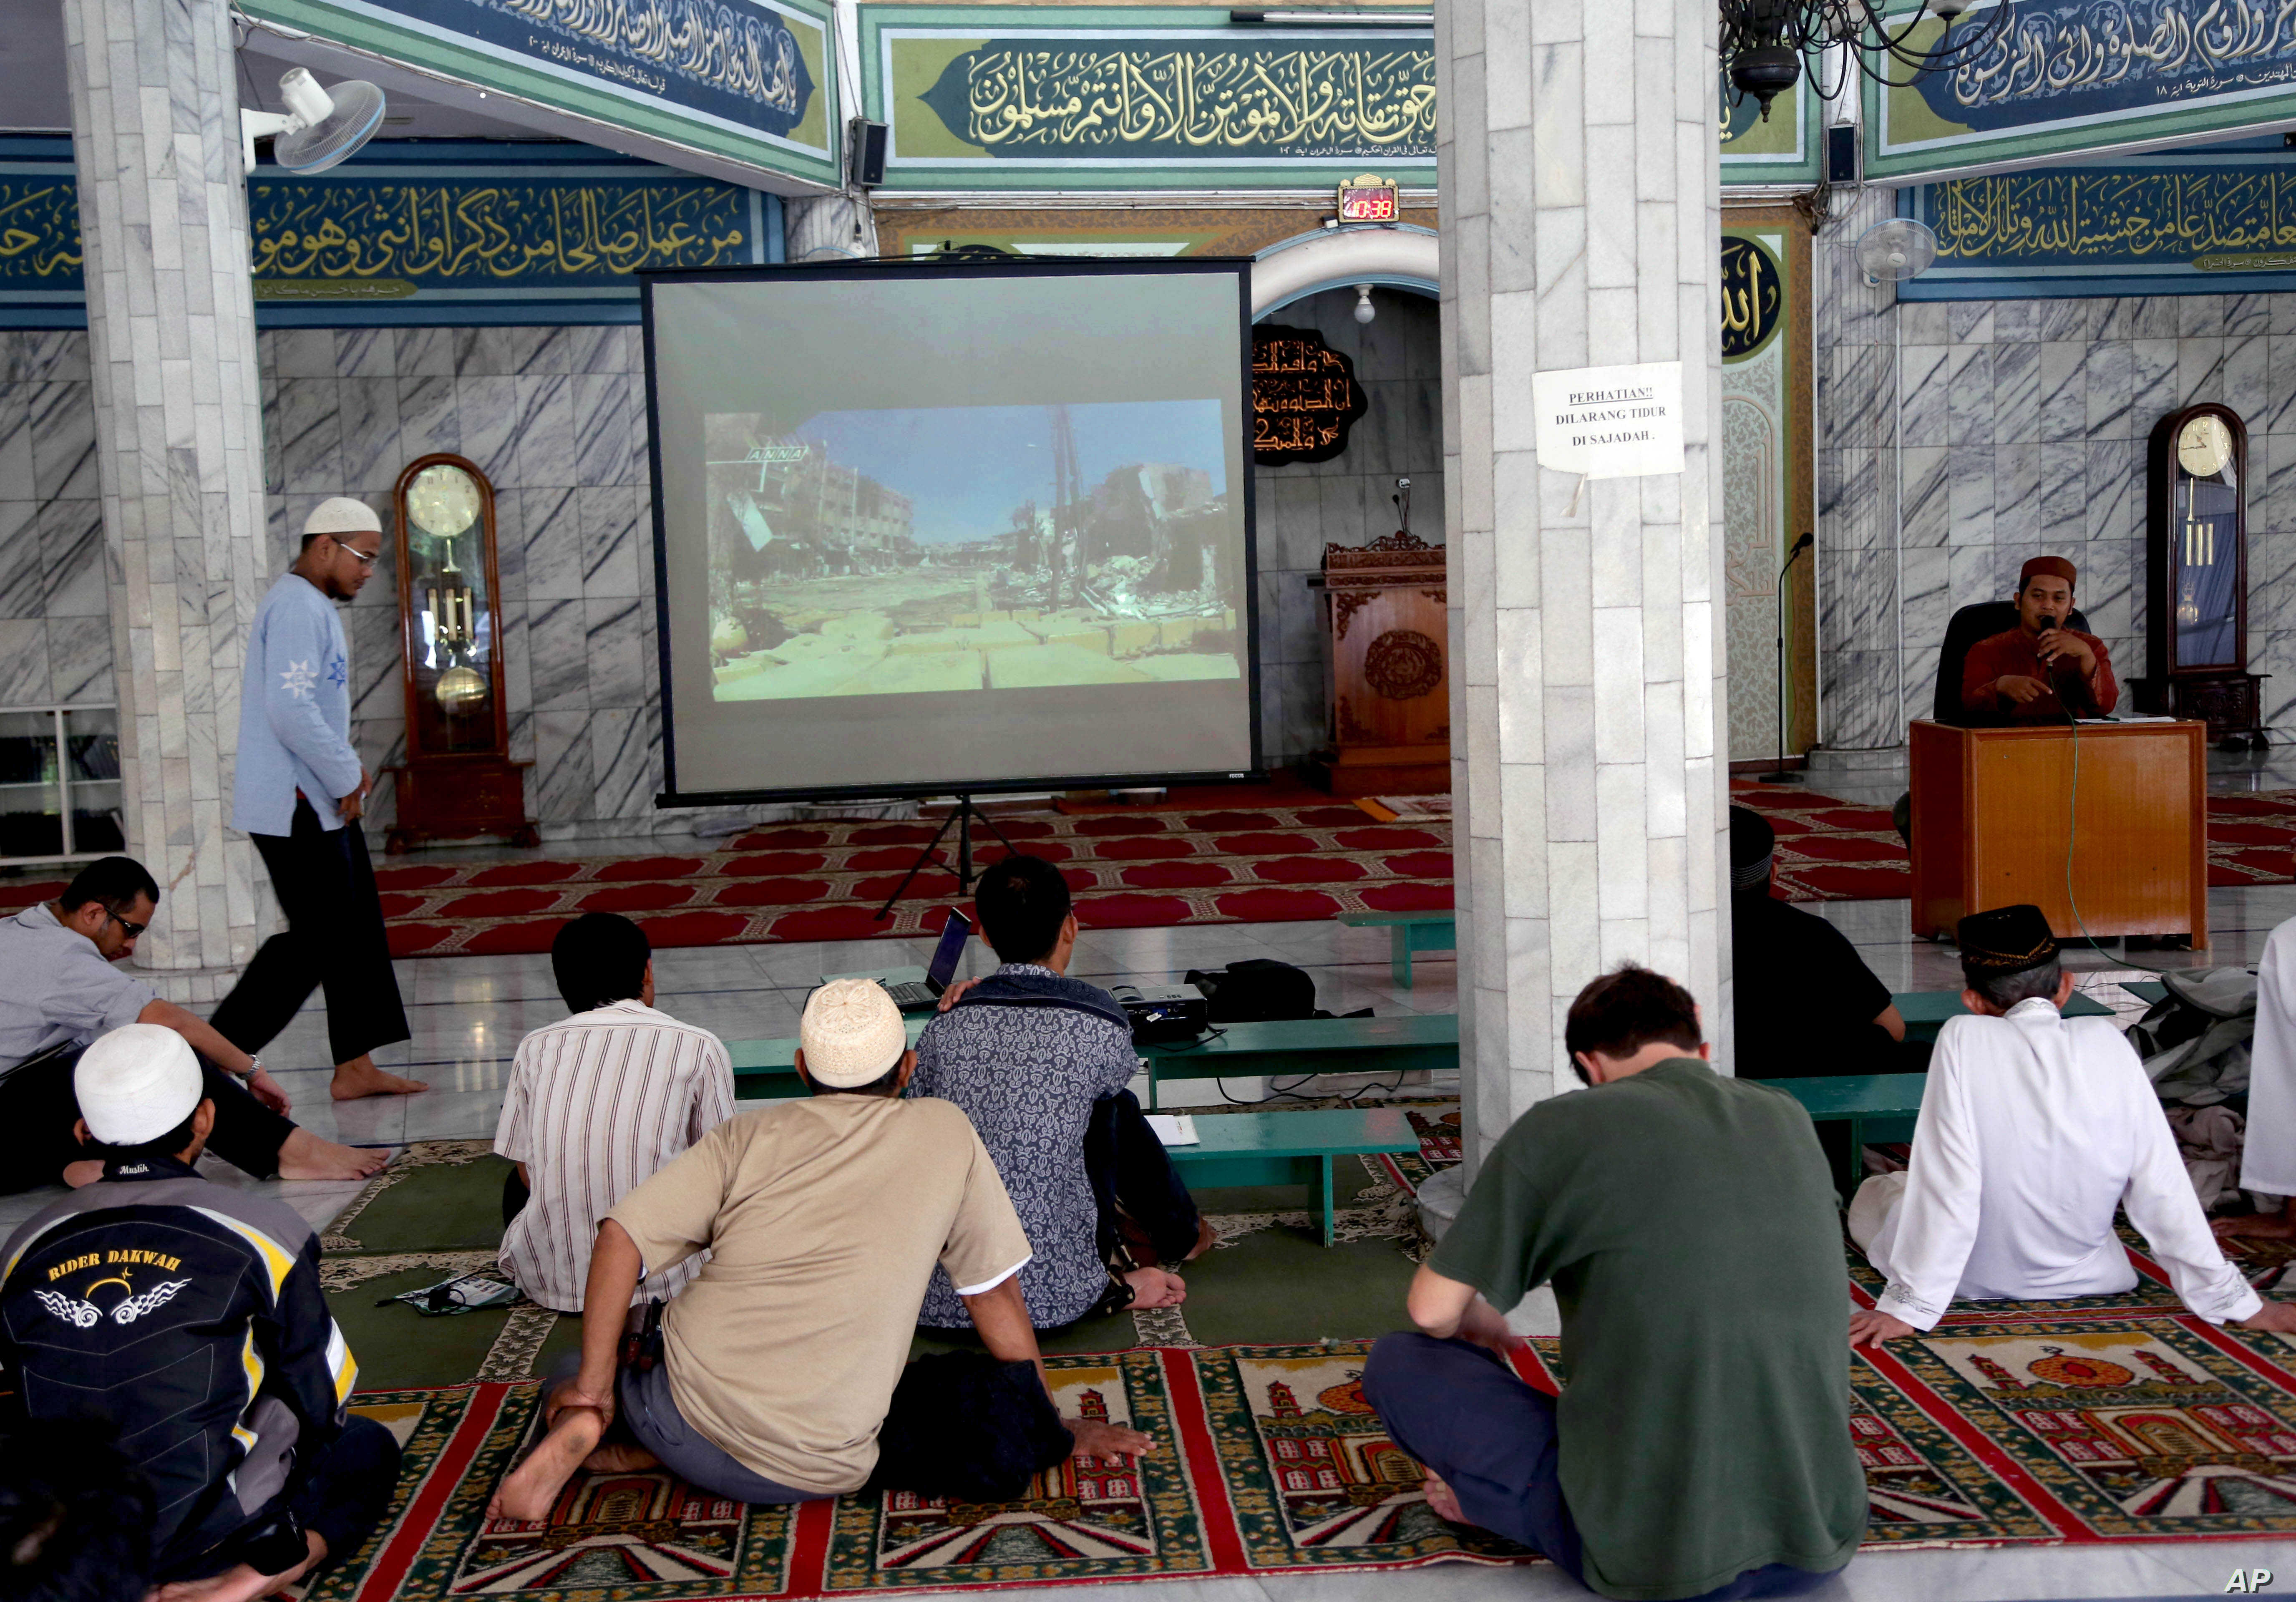 FILE - Muslim men watch a slideshow of pictures believed to be from Syria during a prayer calling for jihad to Syria at a mosque in Jakarta, Indonesia, Dec. 15, 2013.